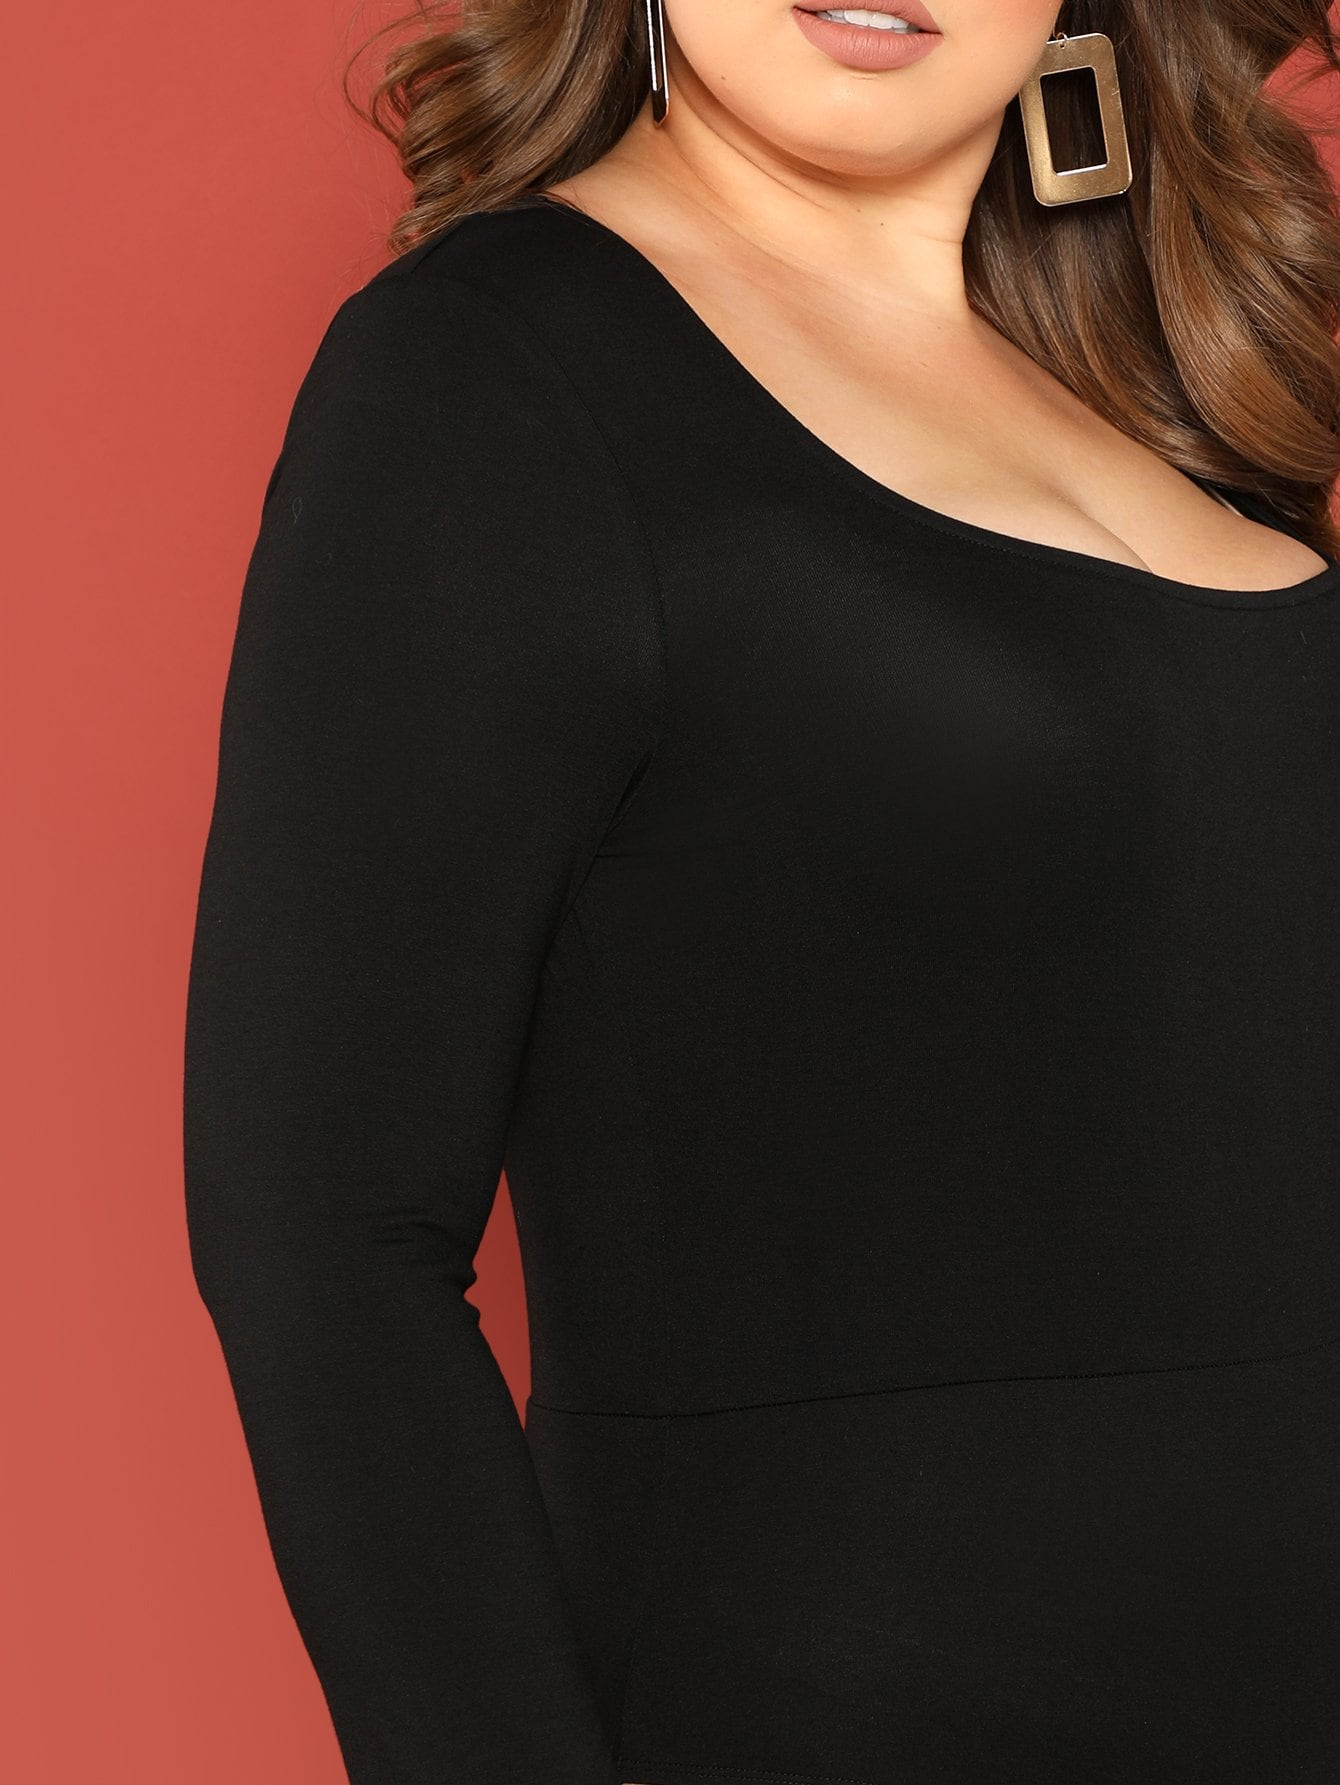 Plus Size Square Neck Solid Black Bodysuit